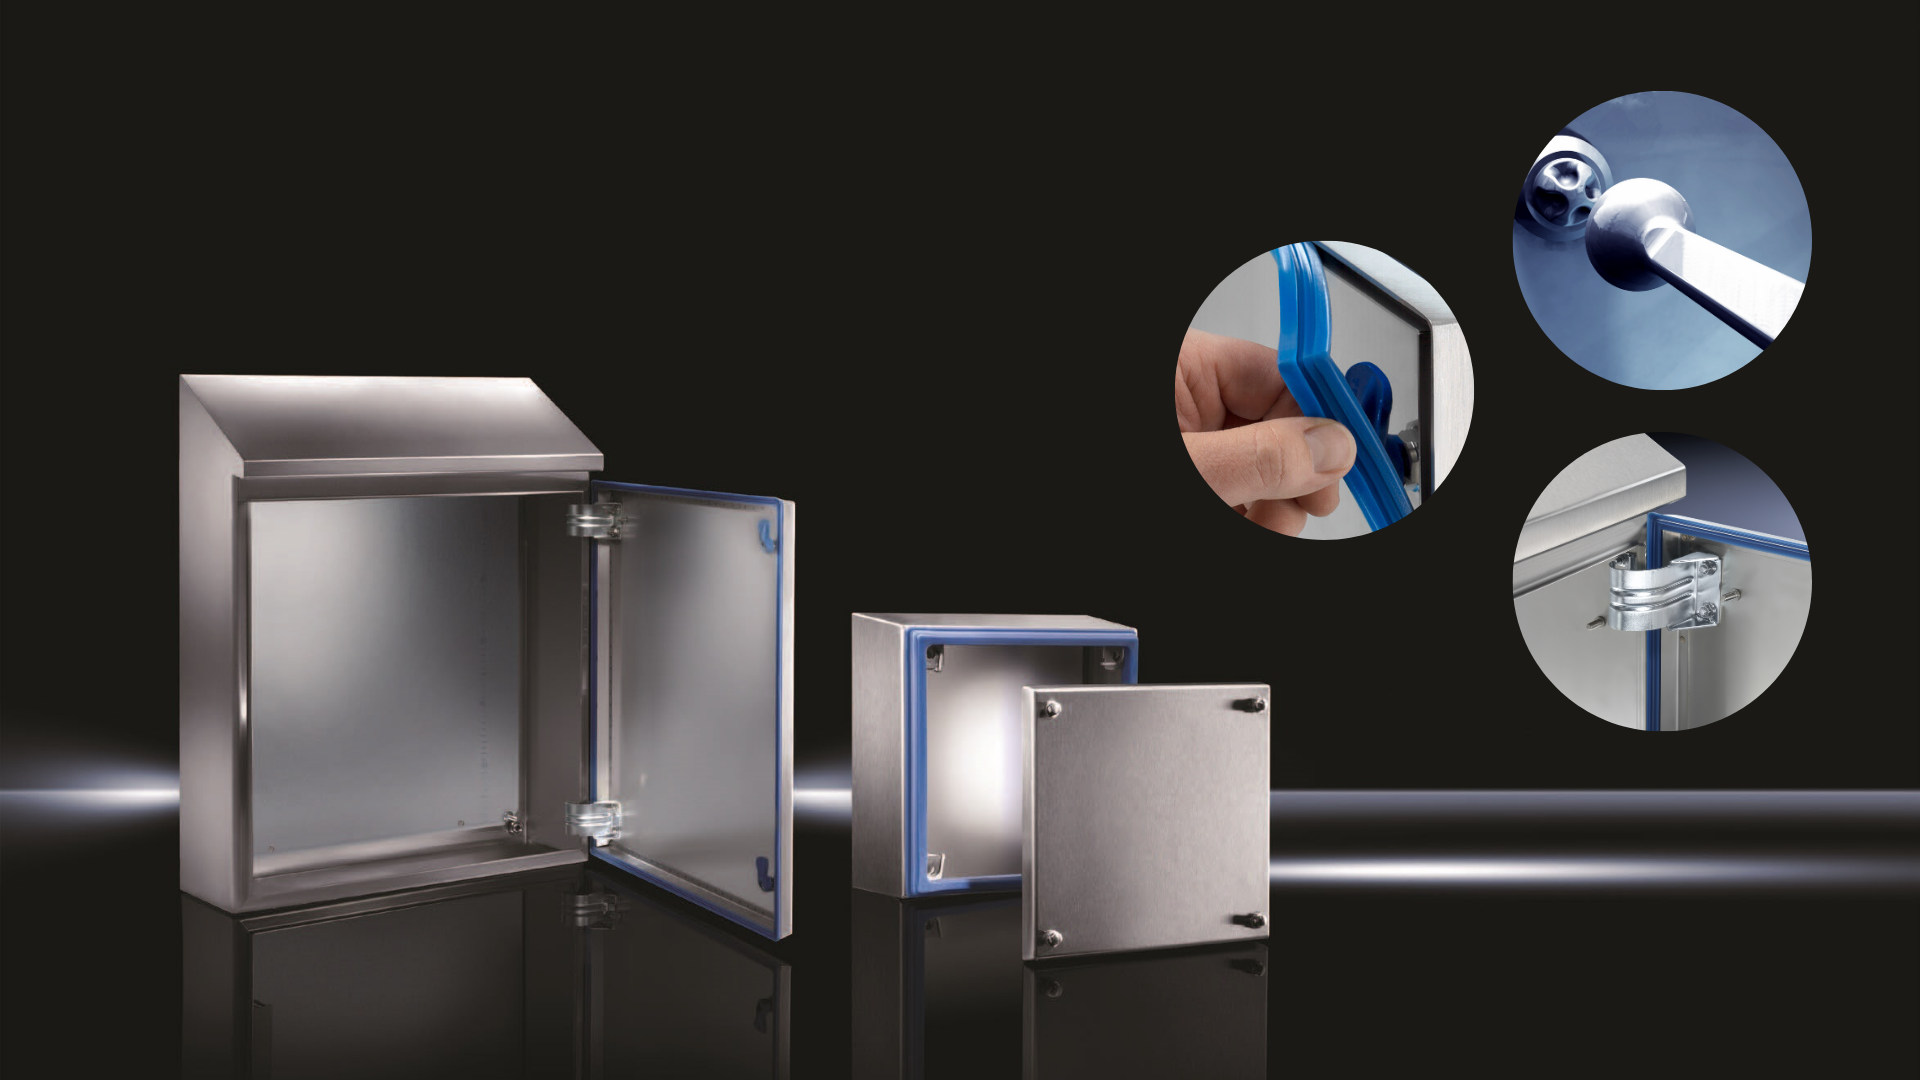 Rittal Hygienic design enclosure for food production